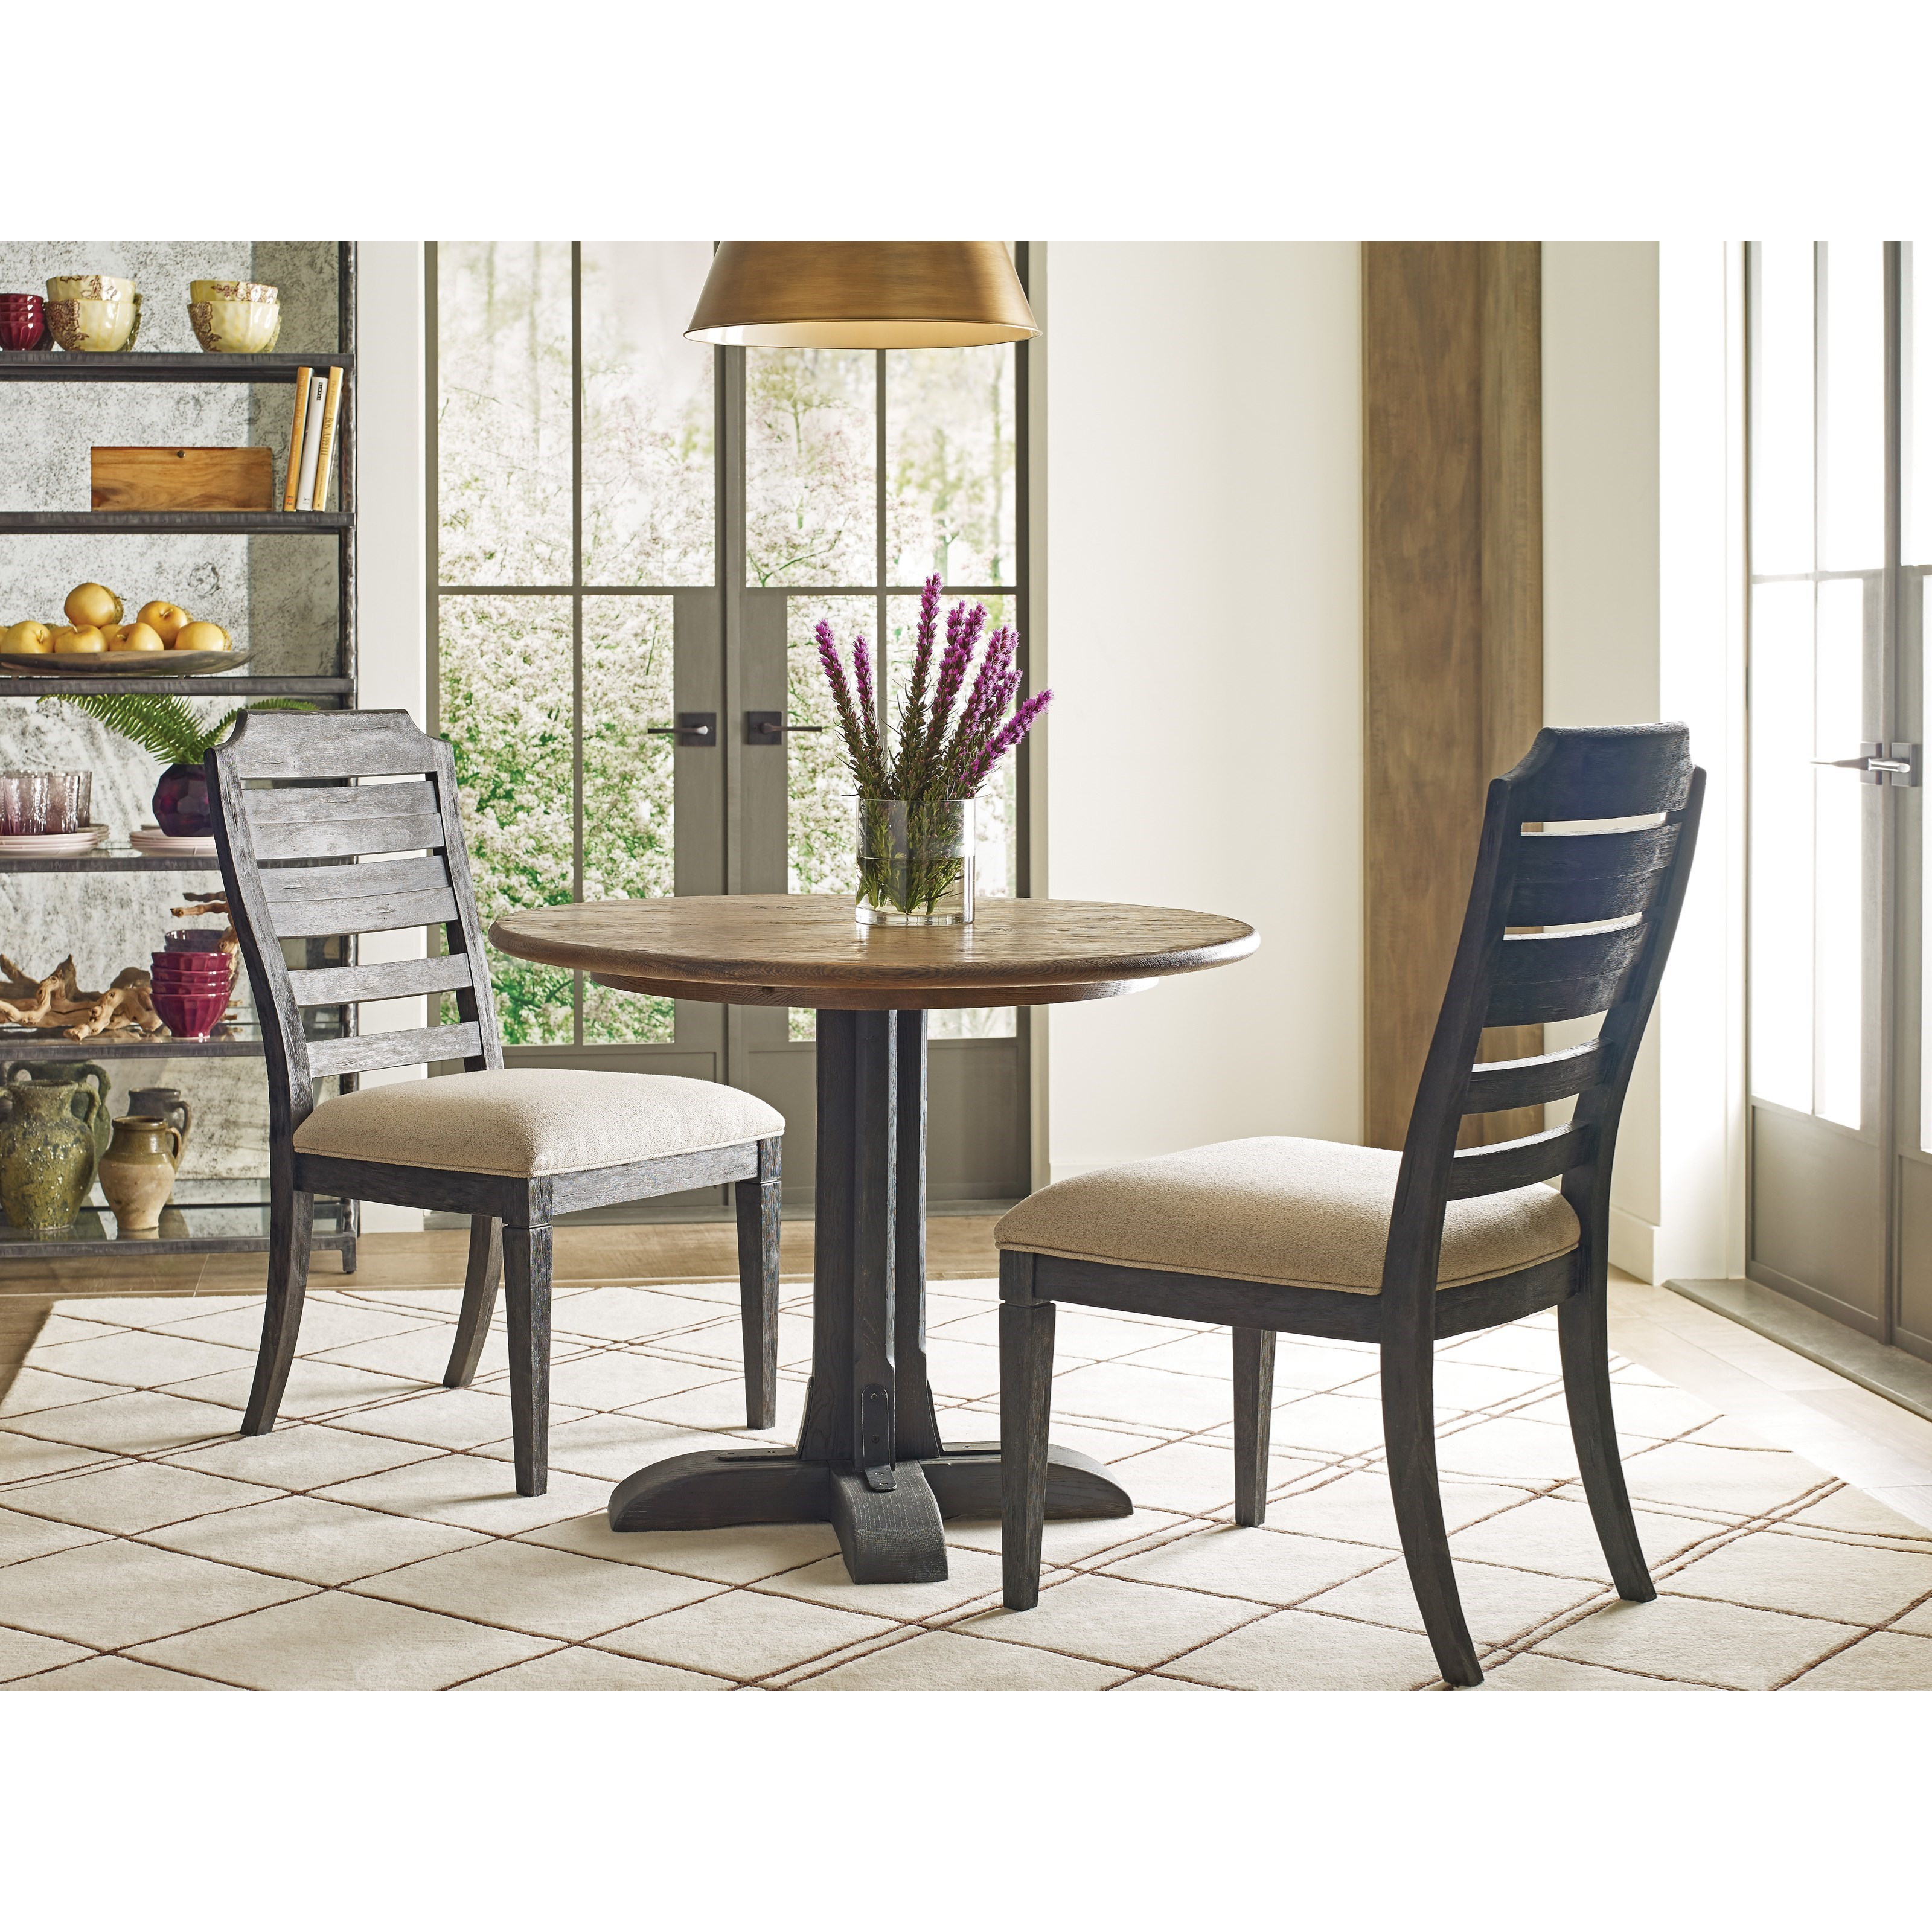 Trails Three Piece Dining Set by Kincaid Furniture at Powell's Furniture and Mattress